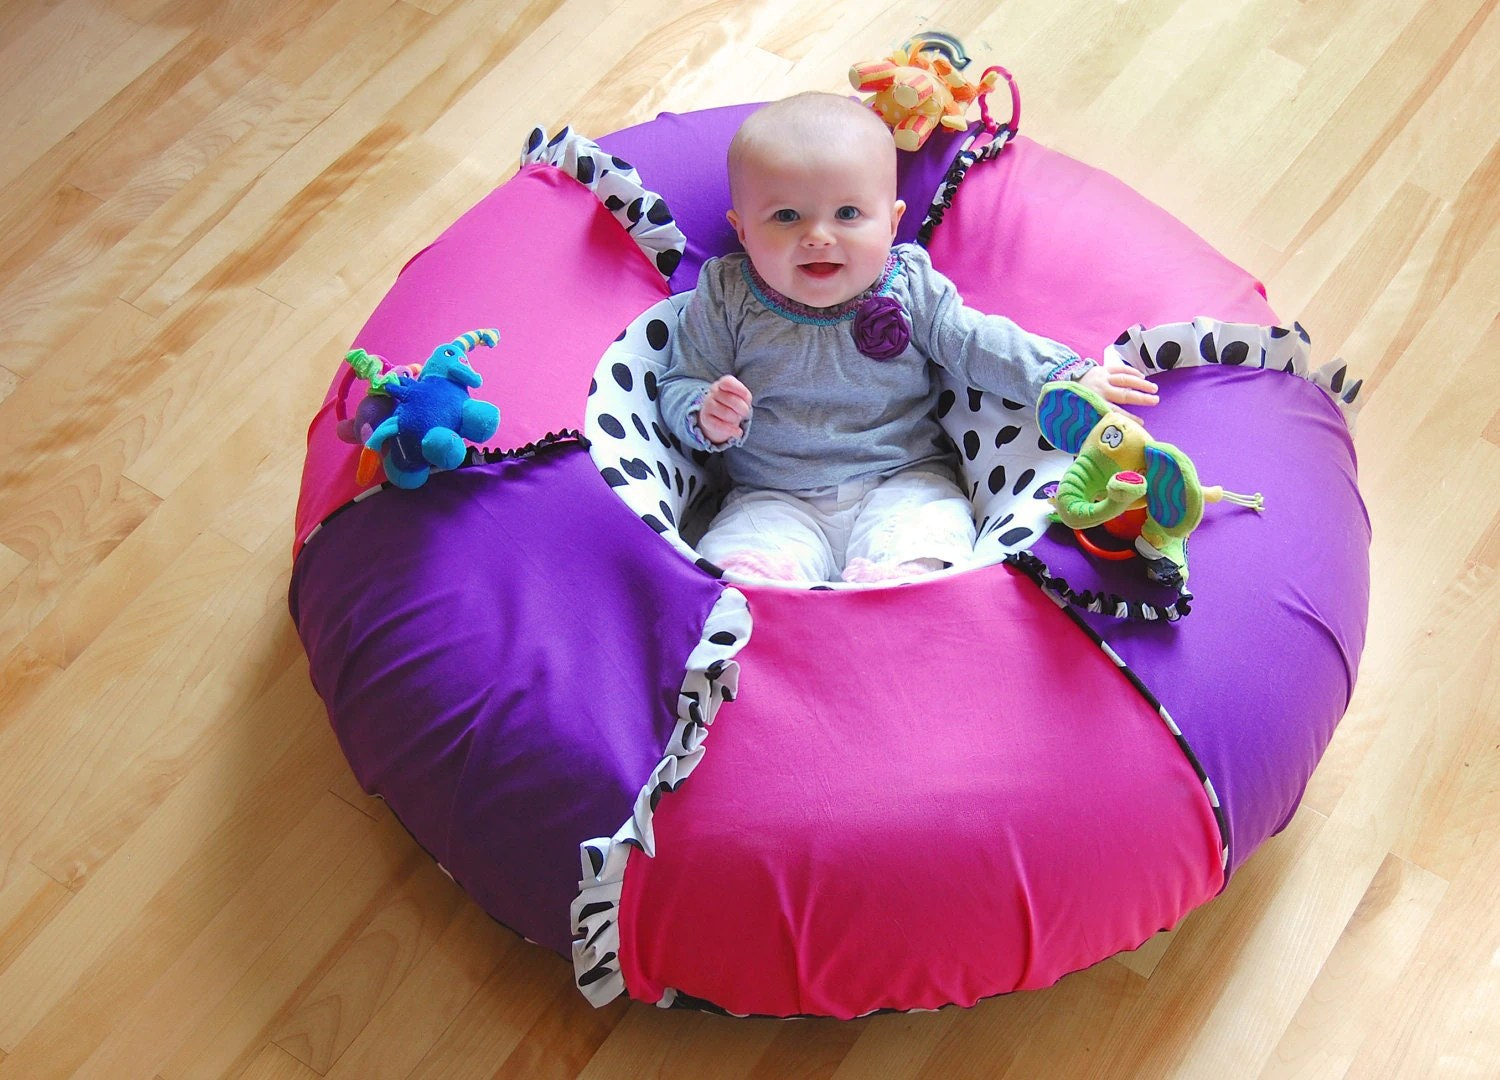 Baby sit and play tube Sit me up donut Inflatable seat by